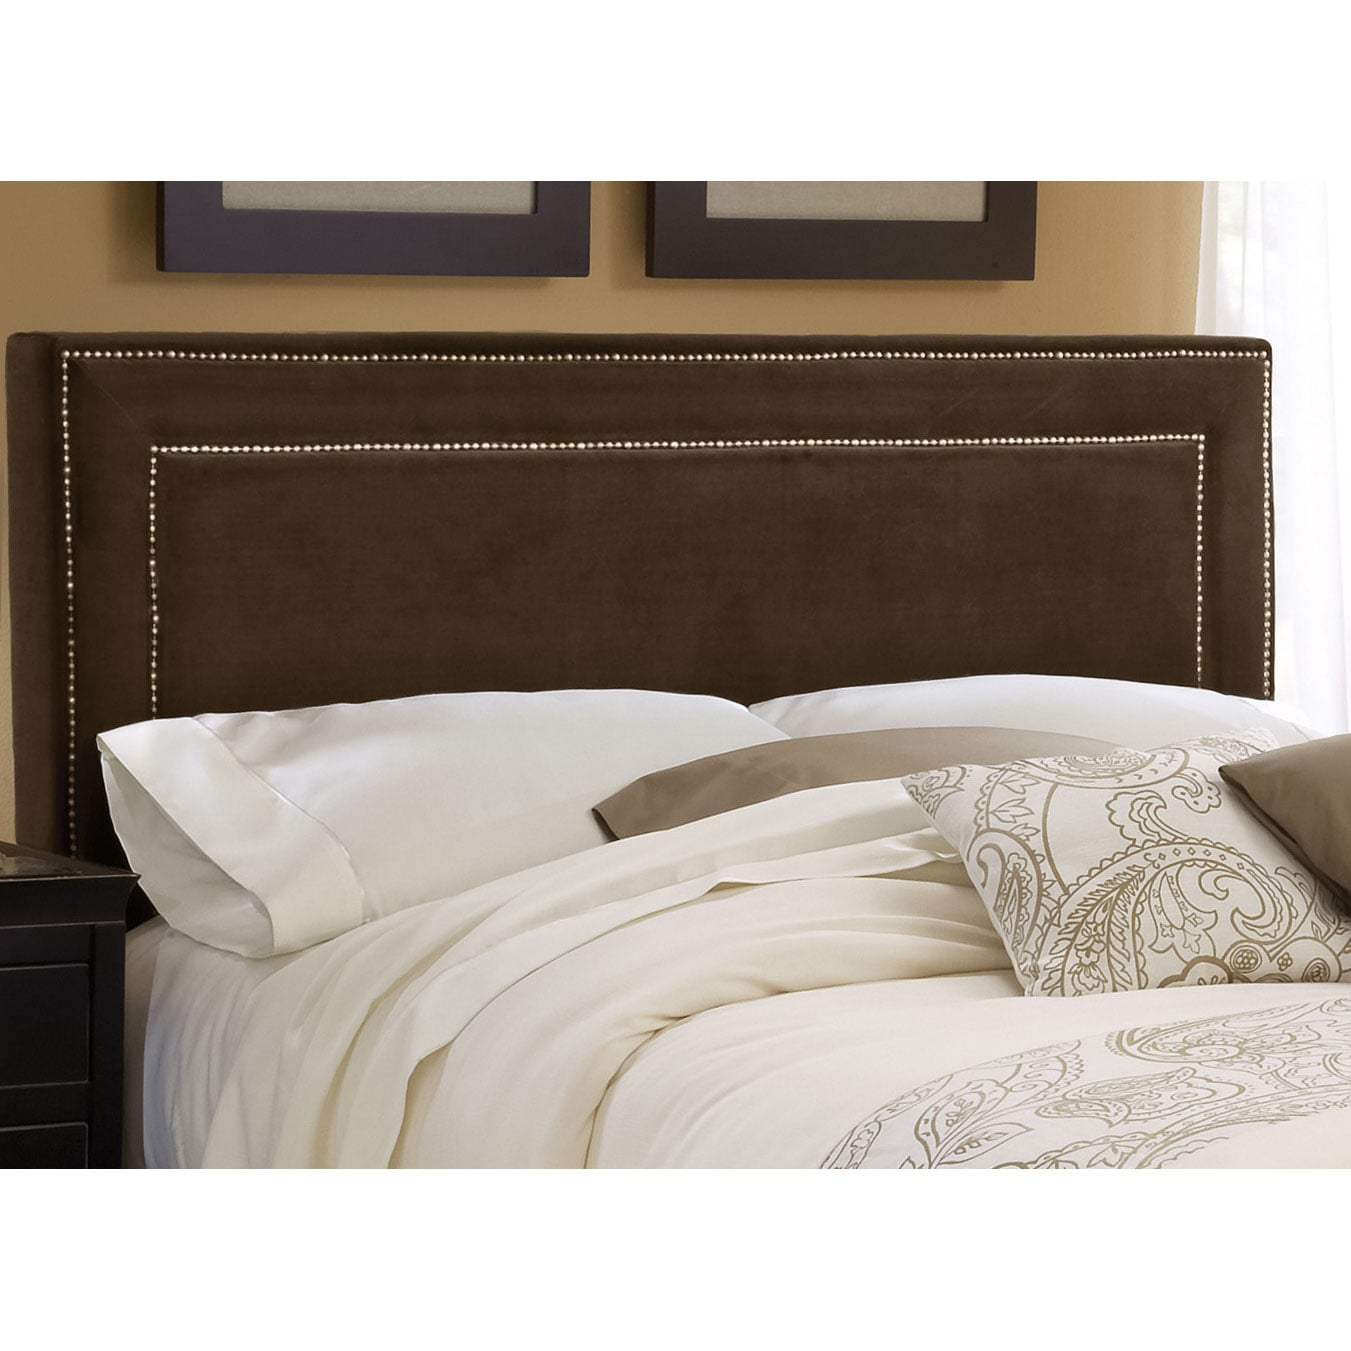 value city headboards upholstered headboard chocolate value city 13709